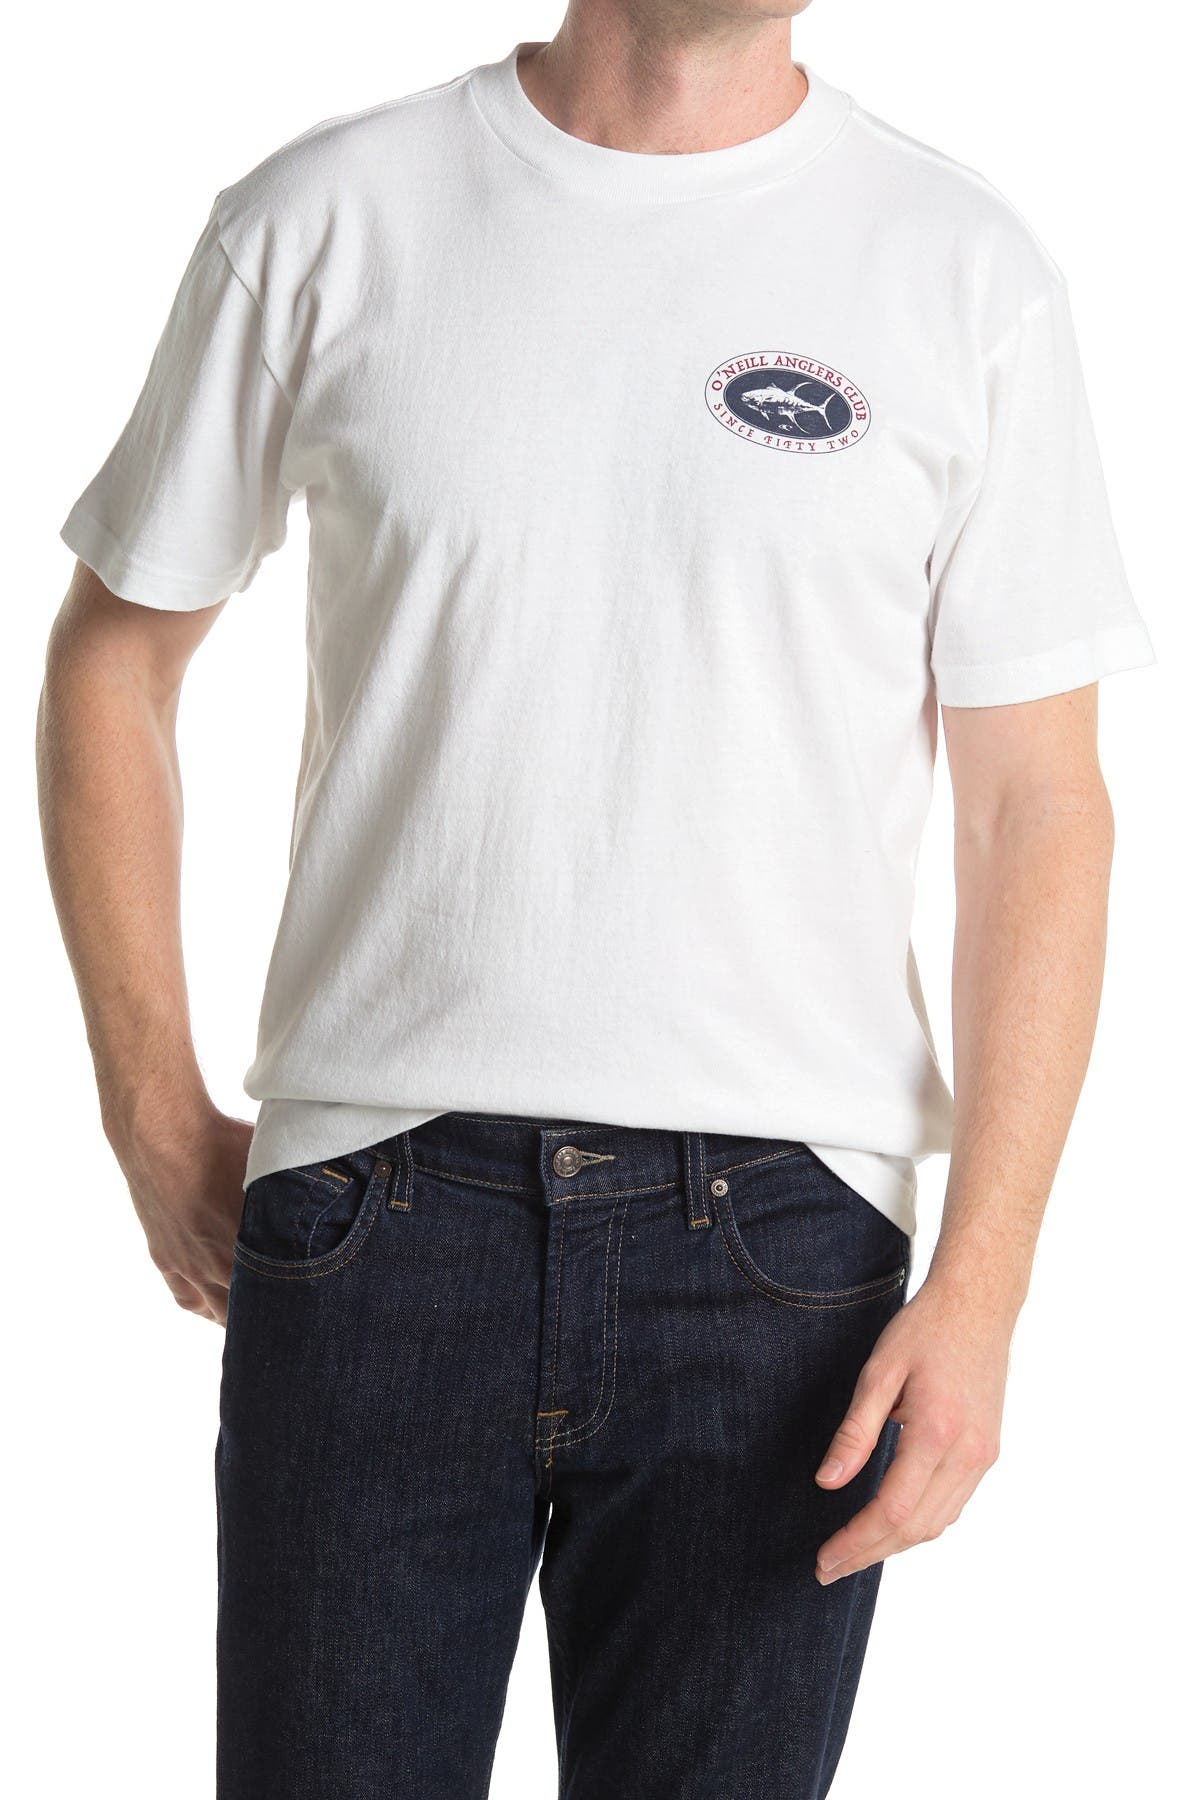 Image of O'Neill Anglers Club Crew Neck T-Shirt